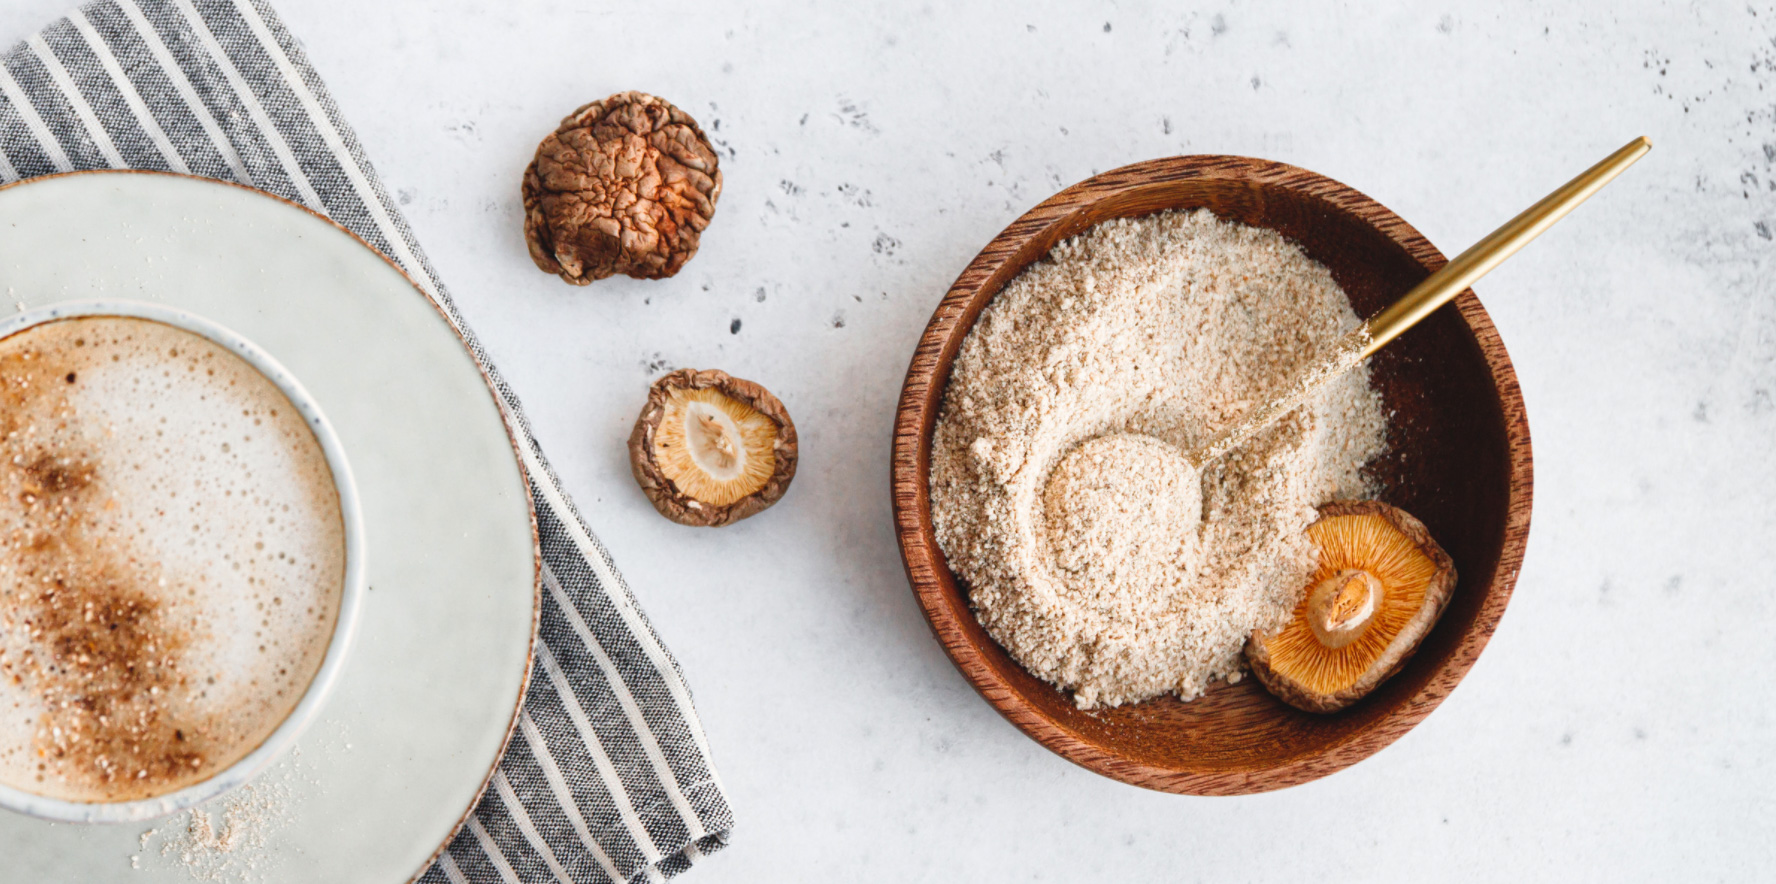 Maca Powder. Image from Canva